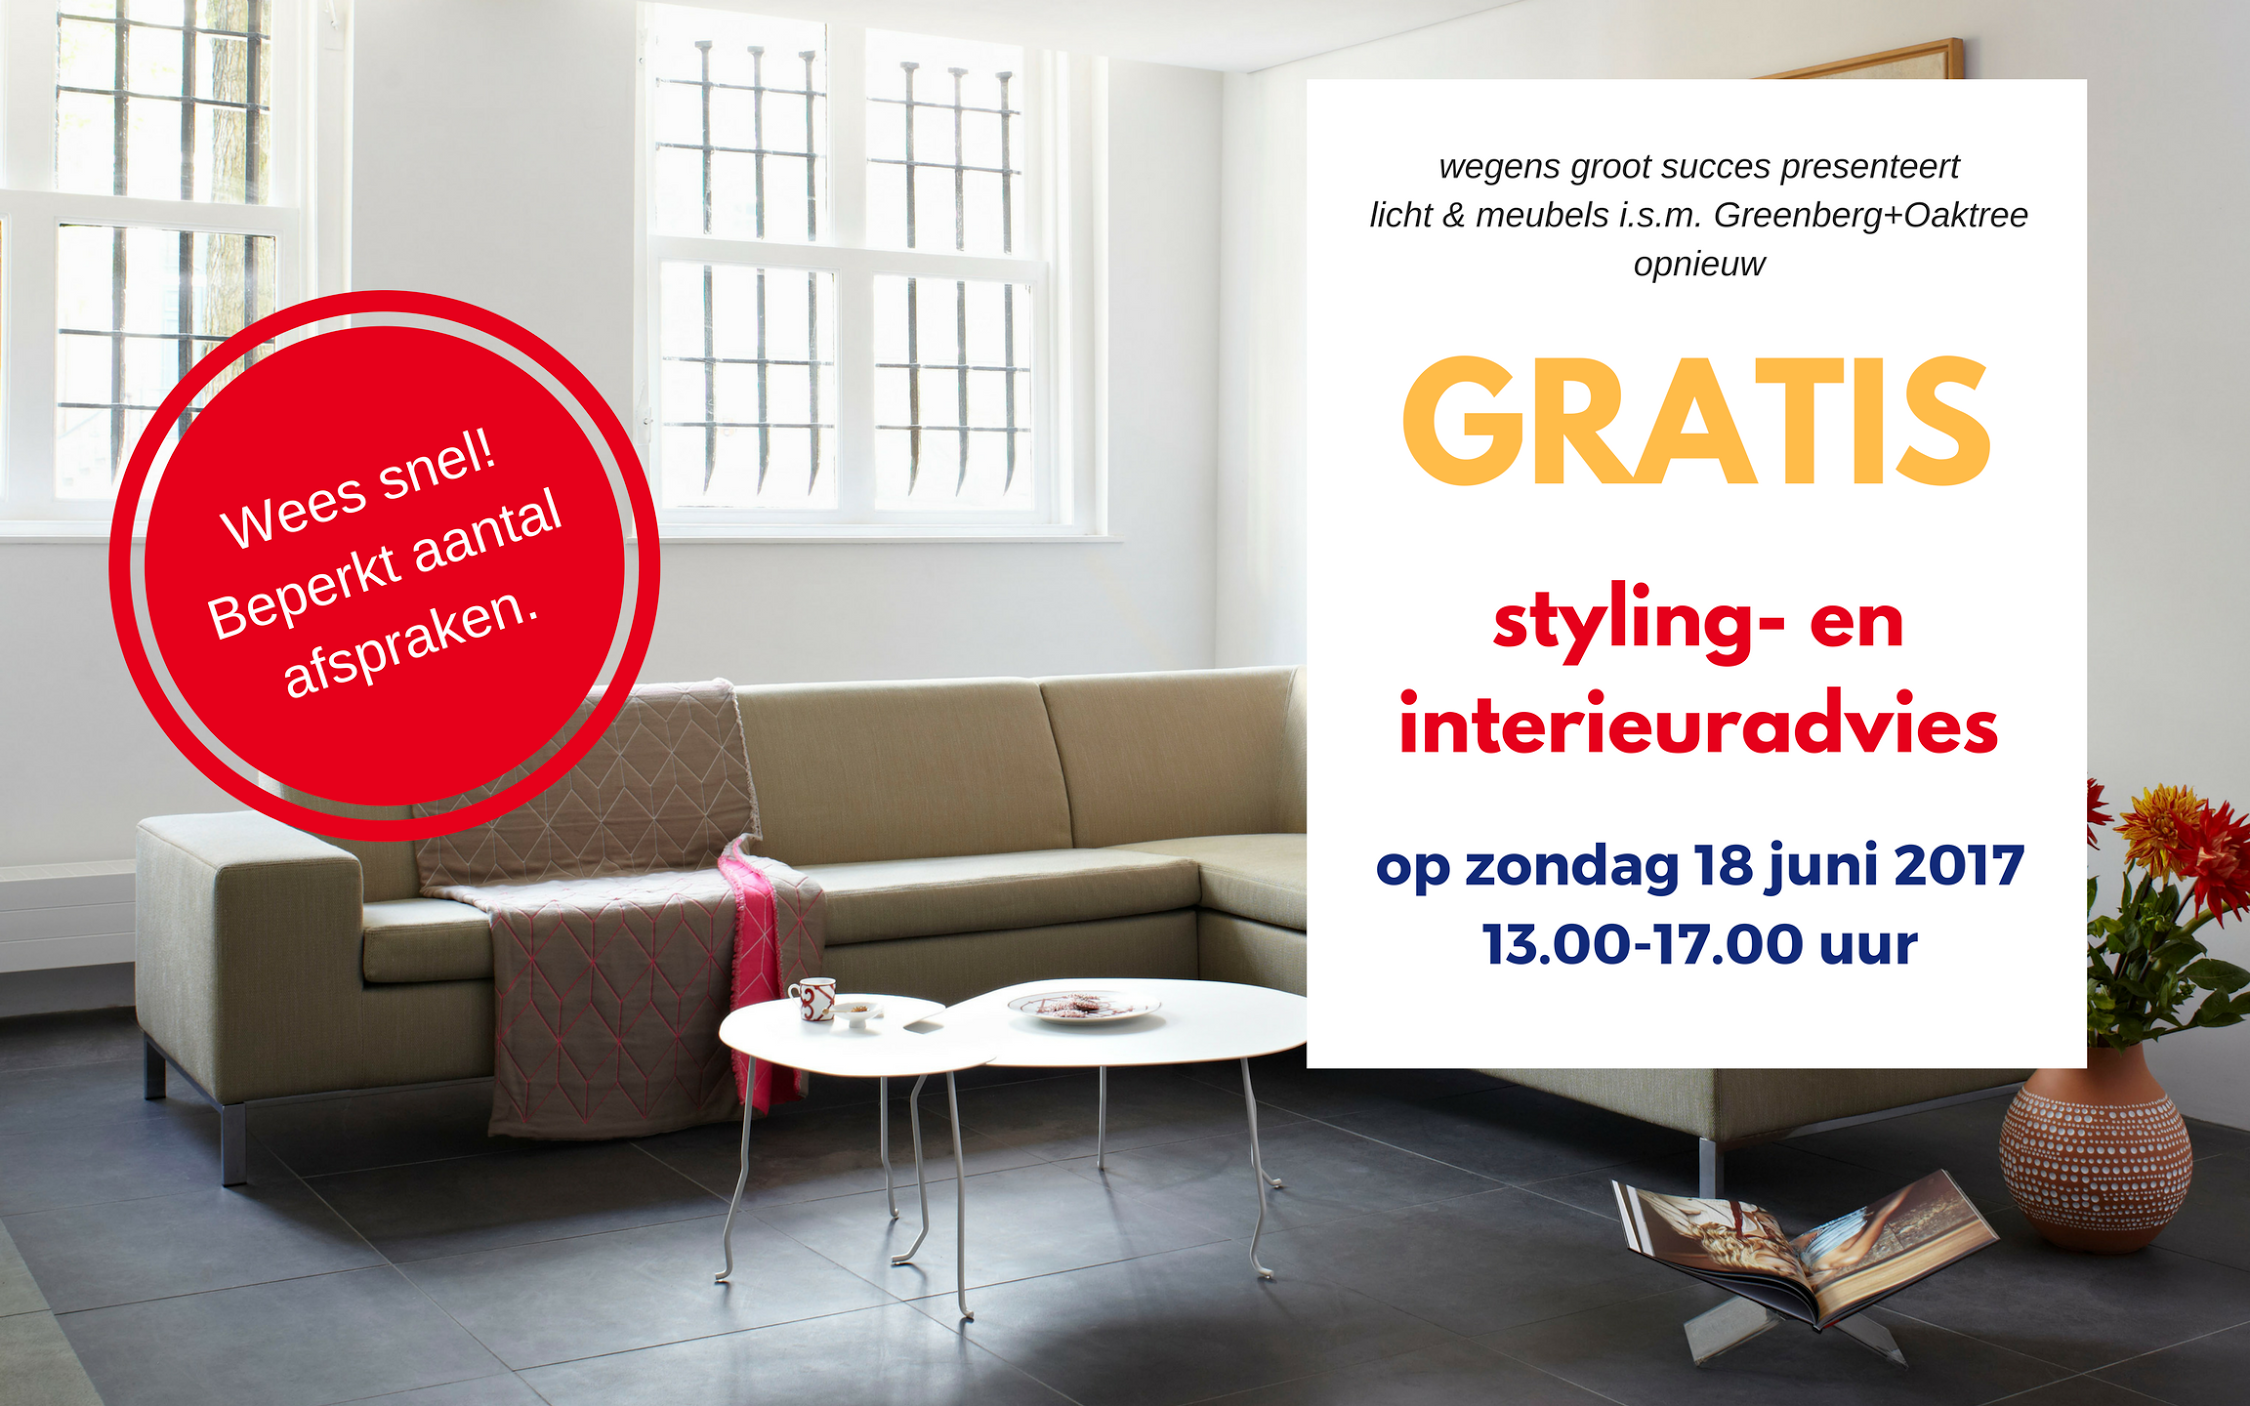 Gratis styling- en interieuradvies